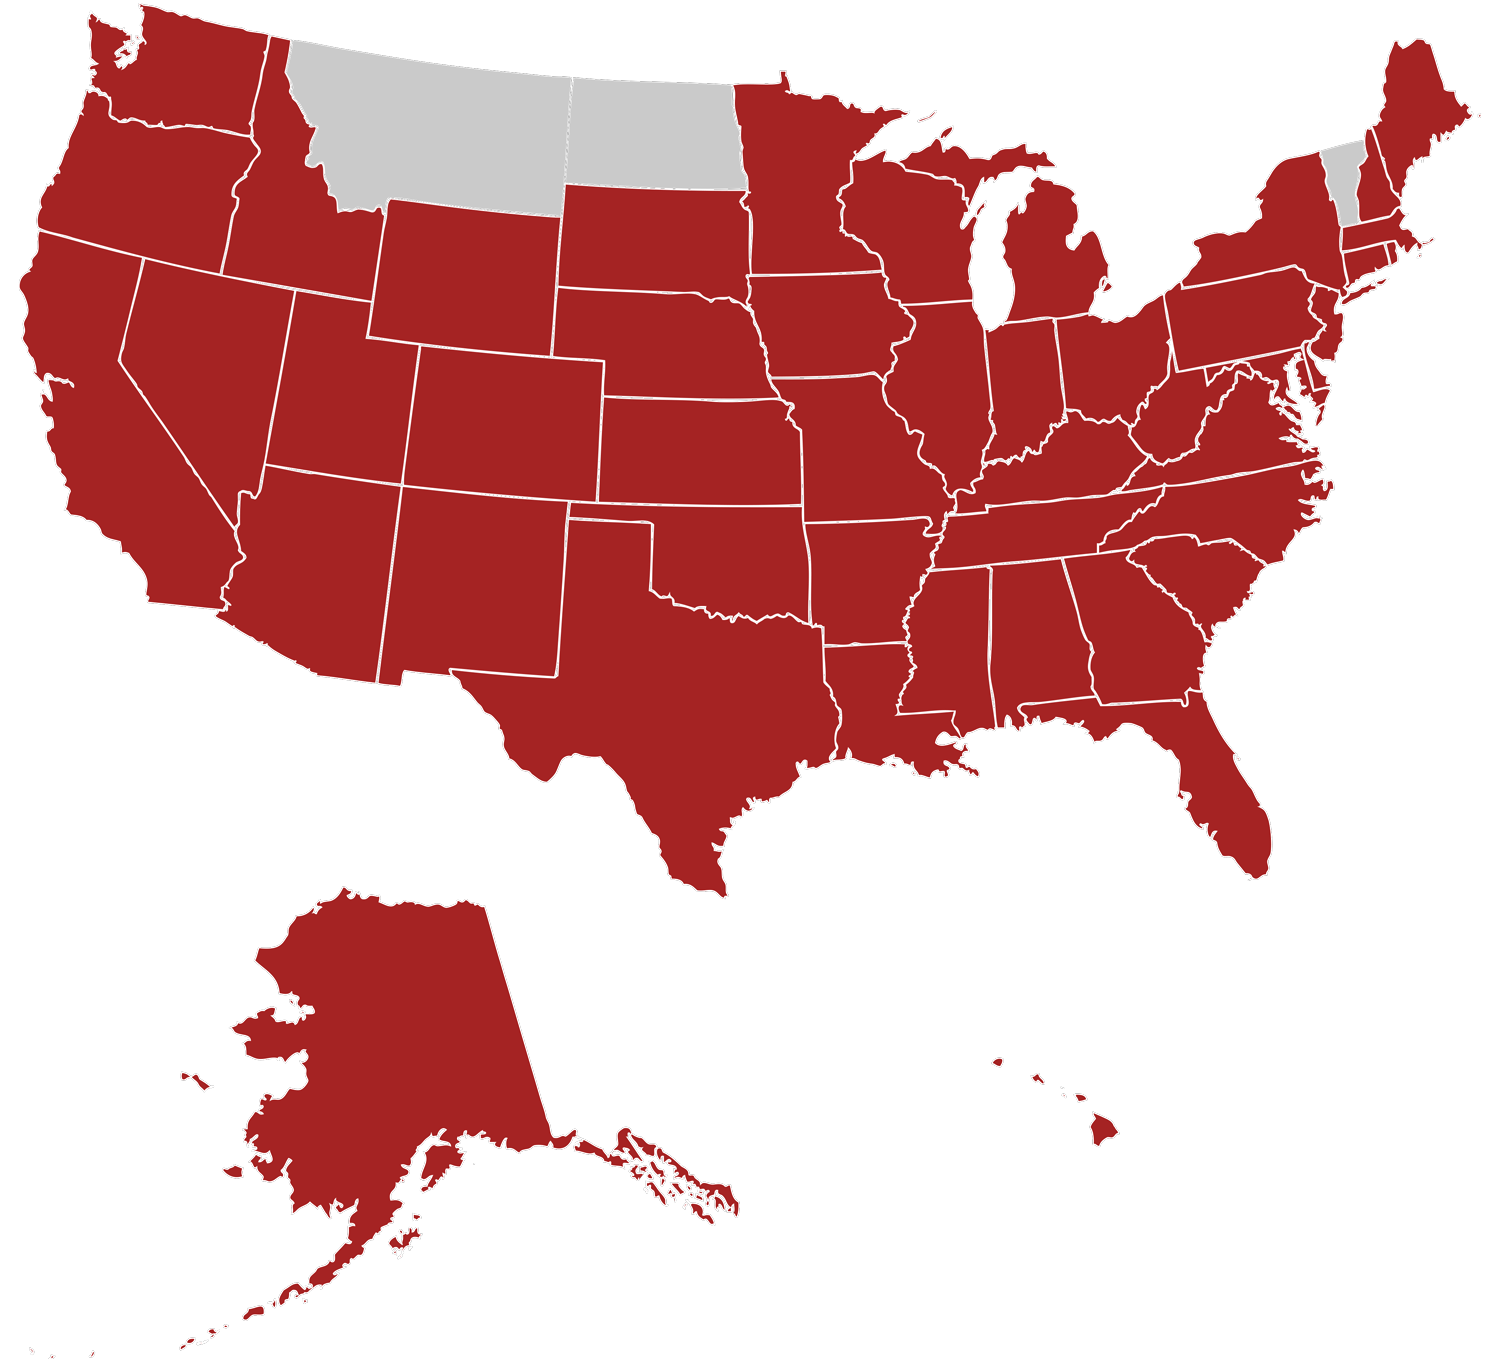 Picture of the United States of America with a lot in red